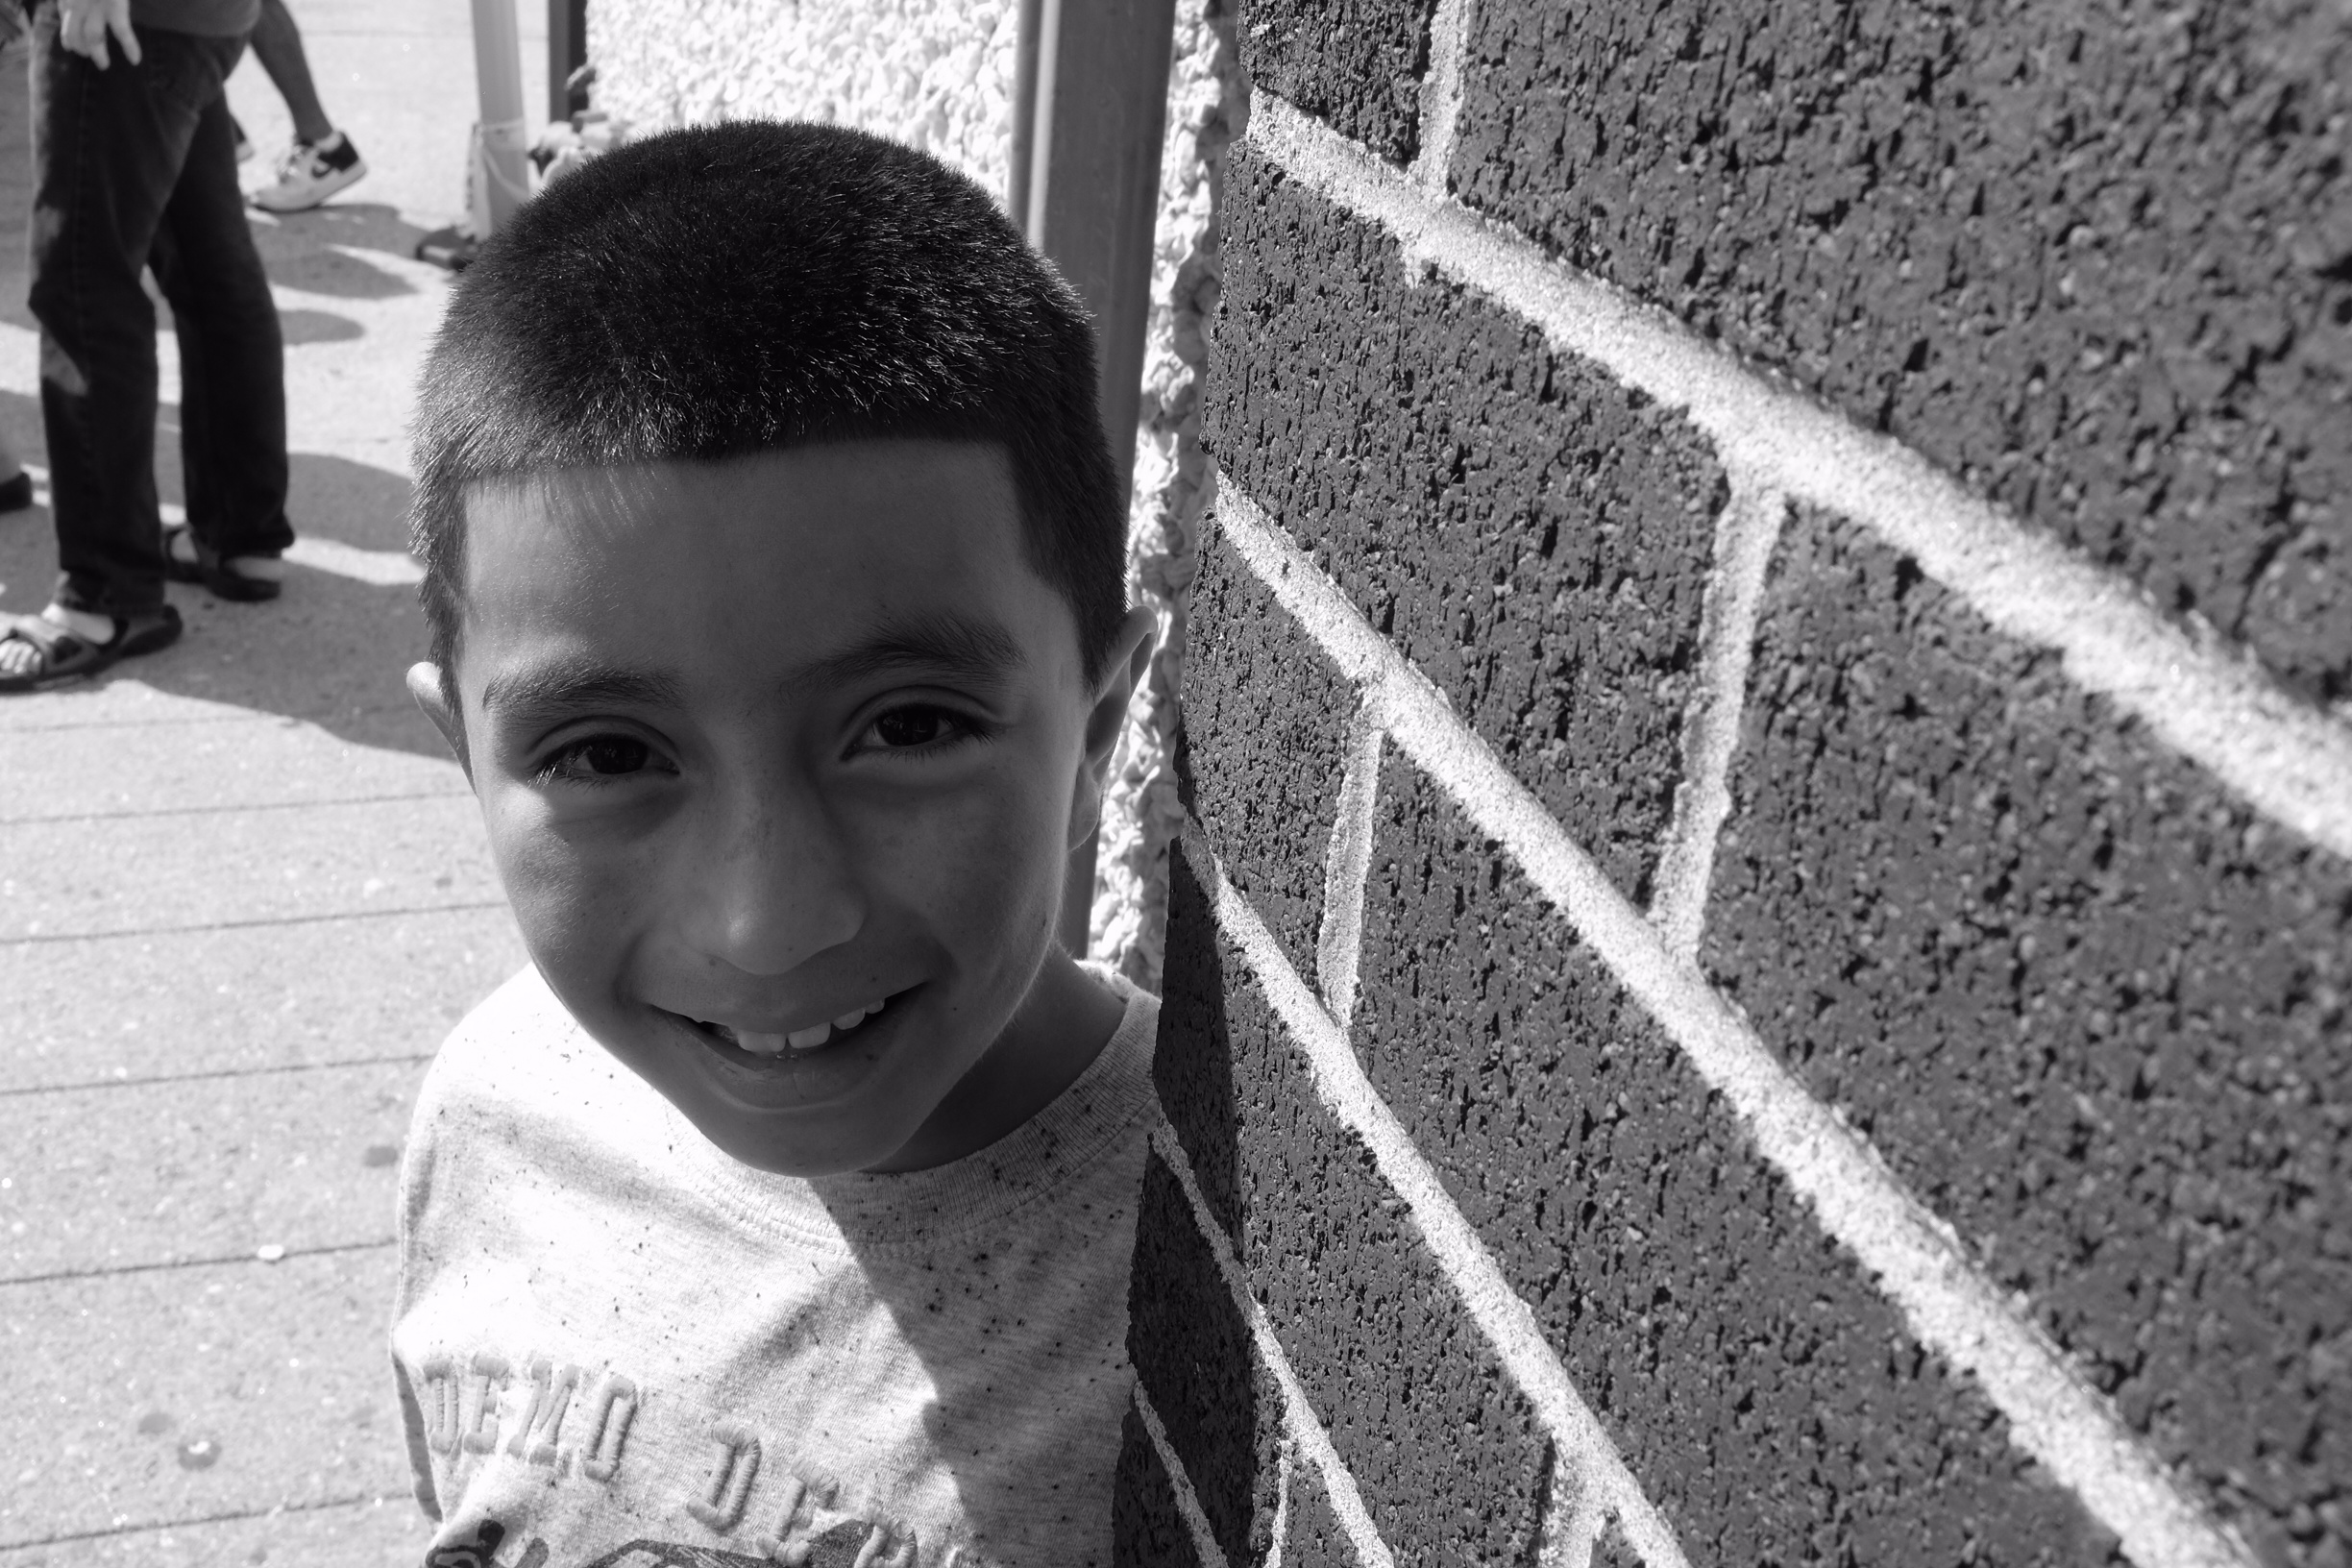 ACTION ALERT: Tell Governor Malloy to welcome refugee children